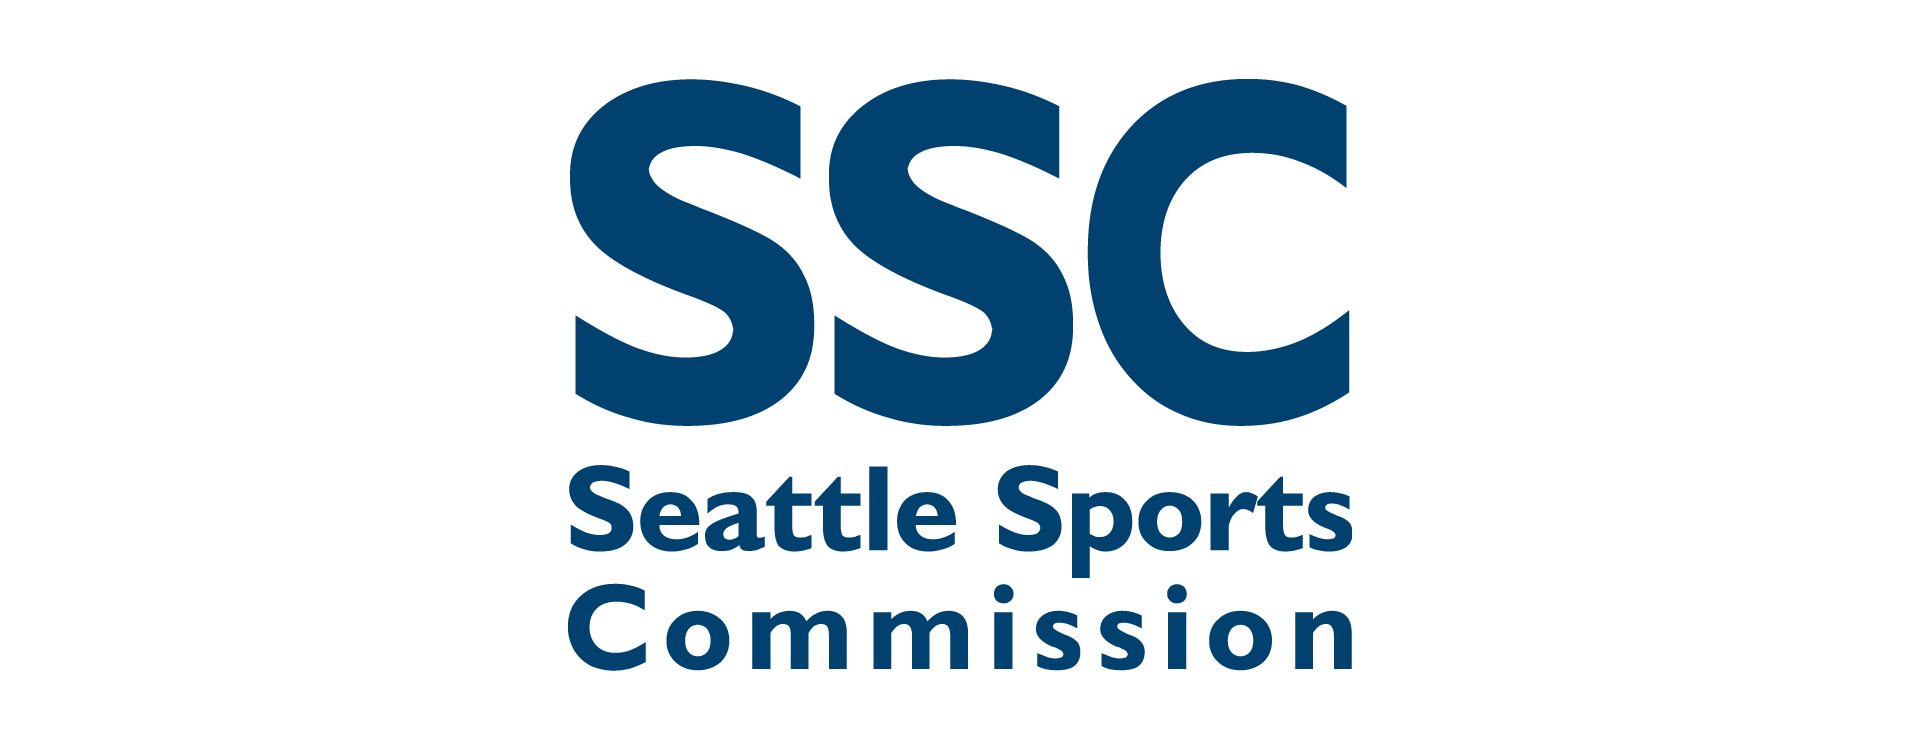 Seattle Sports Commission